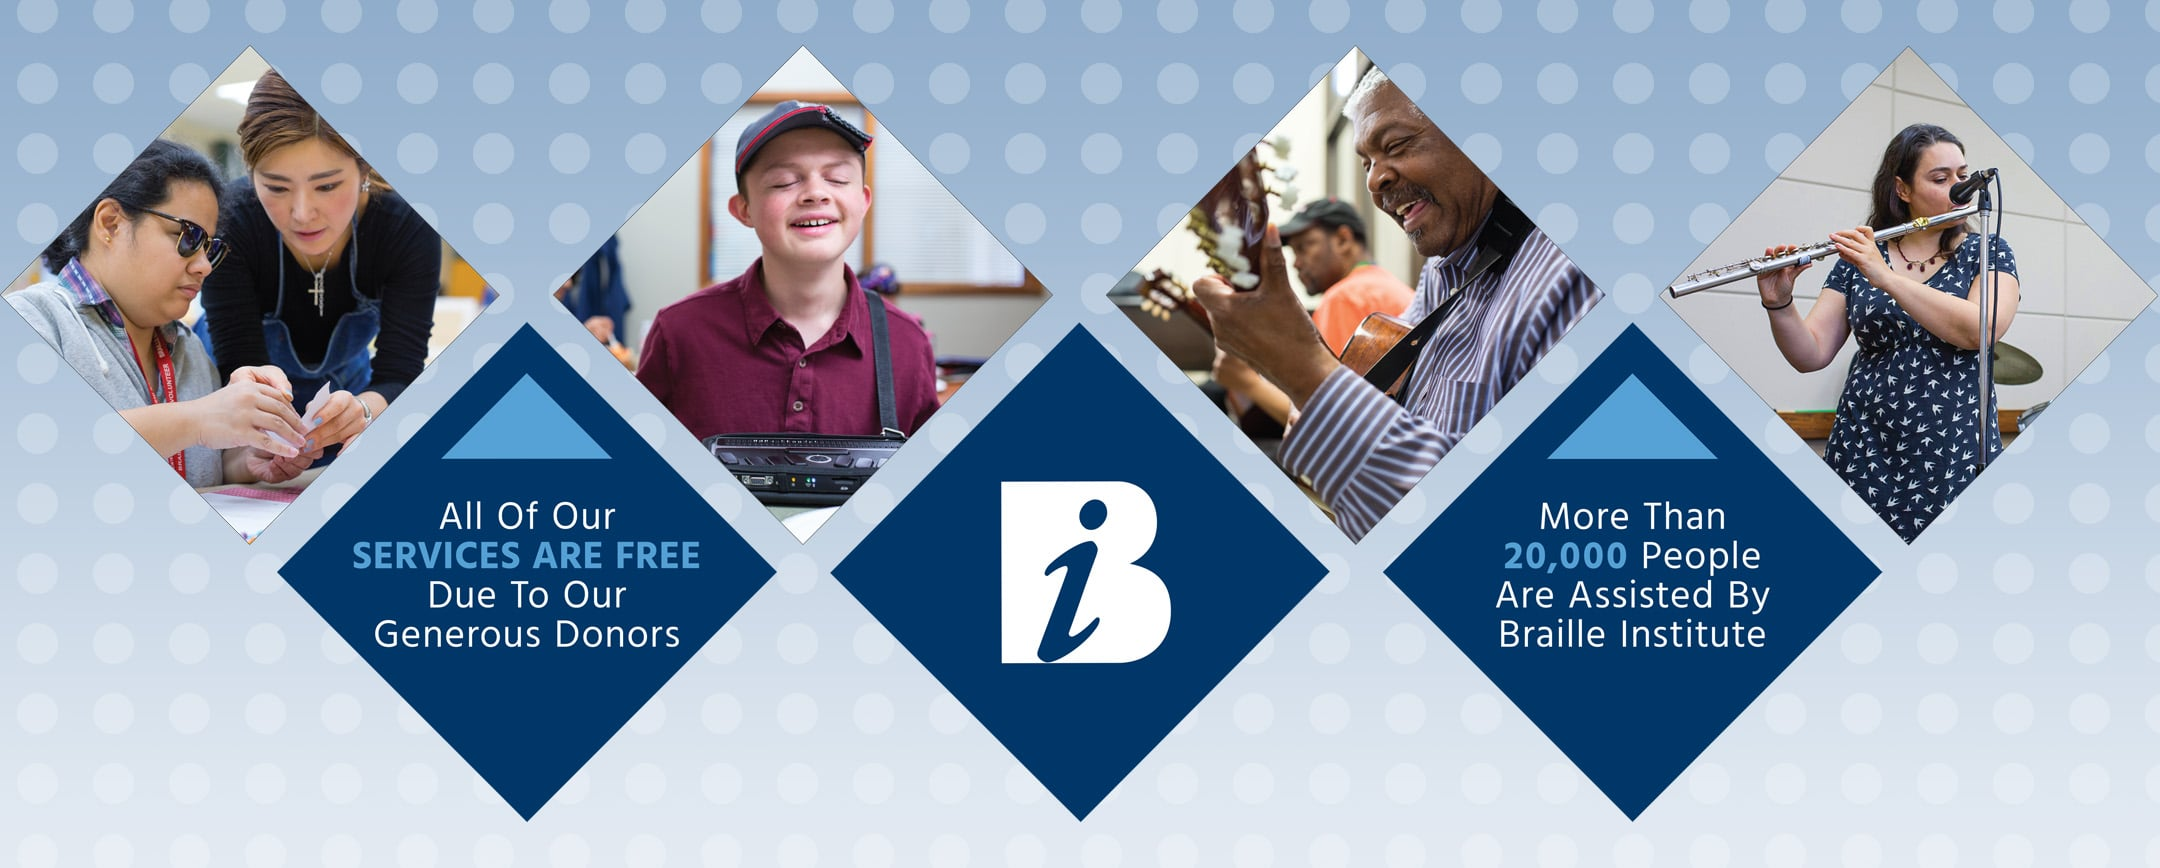 Four images in diamond shapes of Braille Institute students and volunteers, with information about free services.